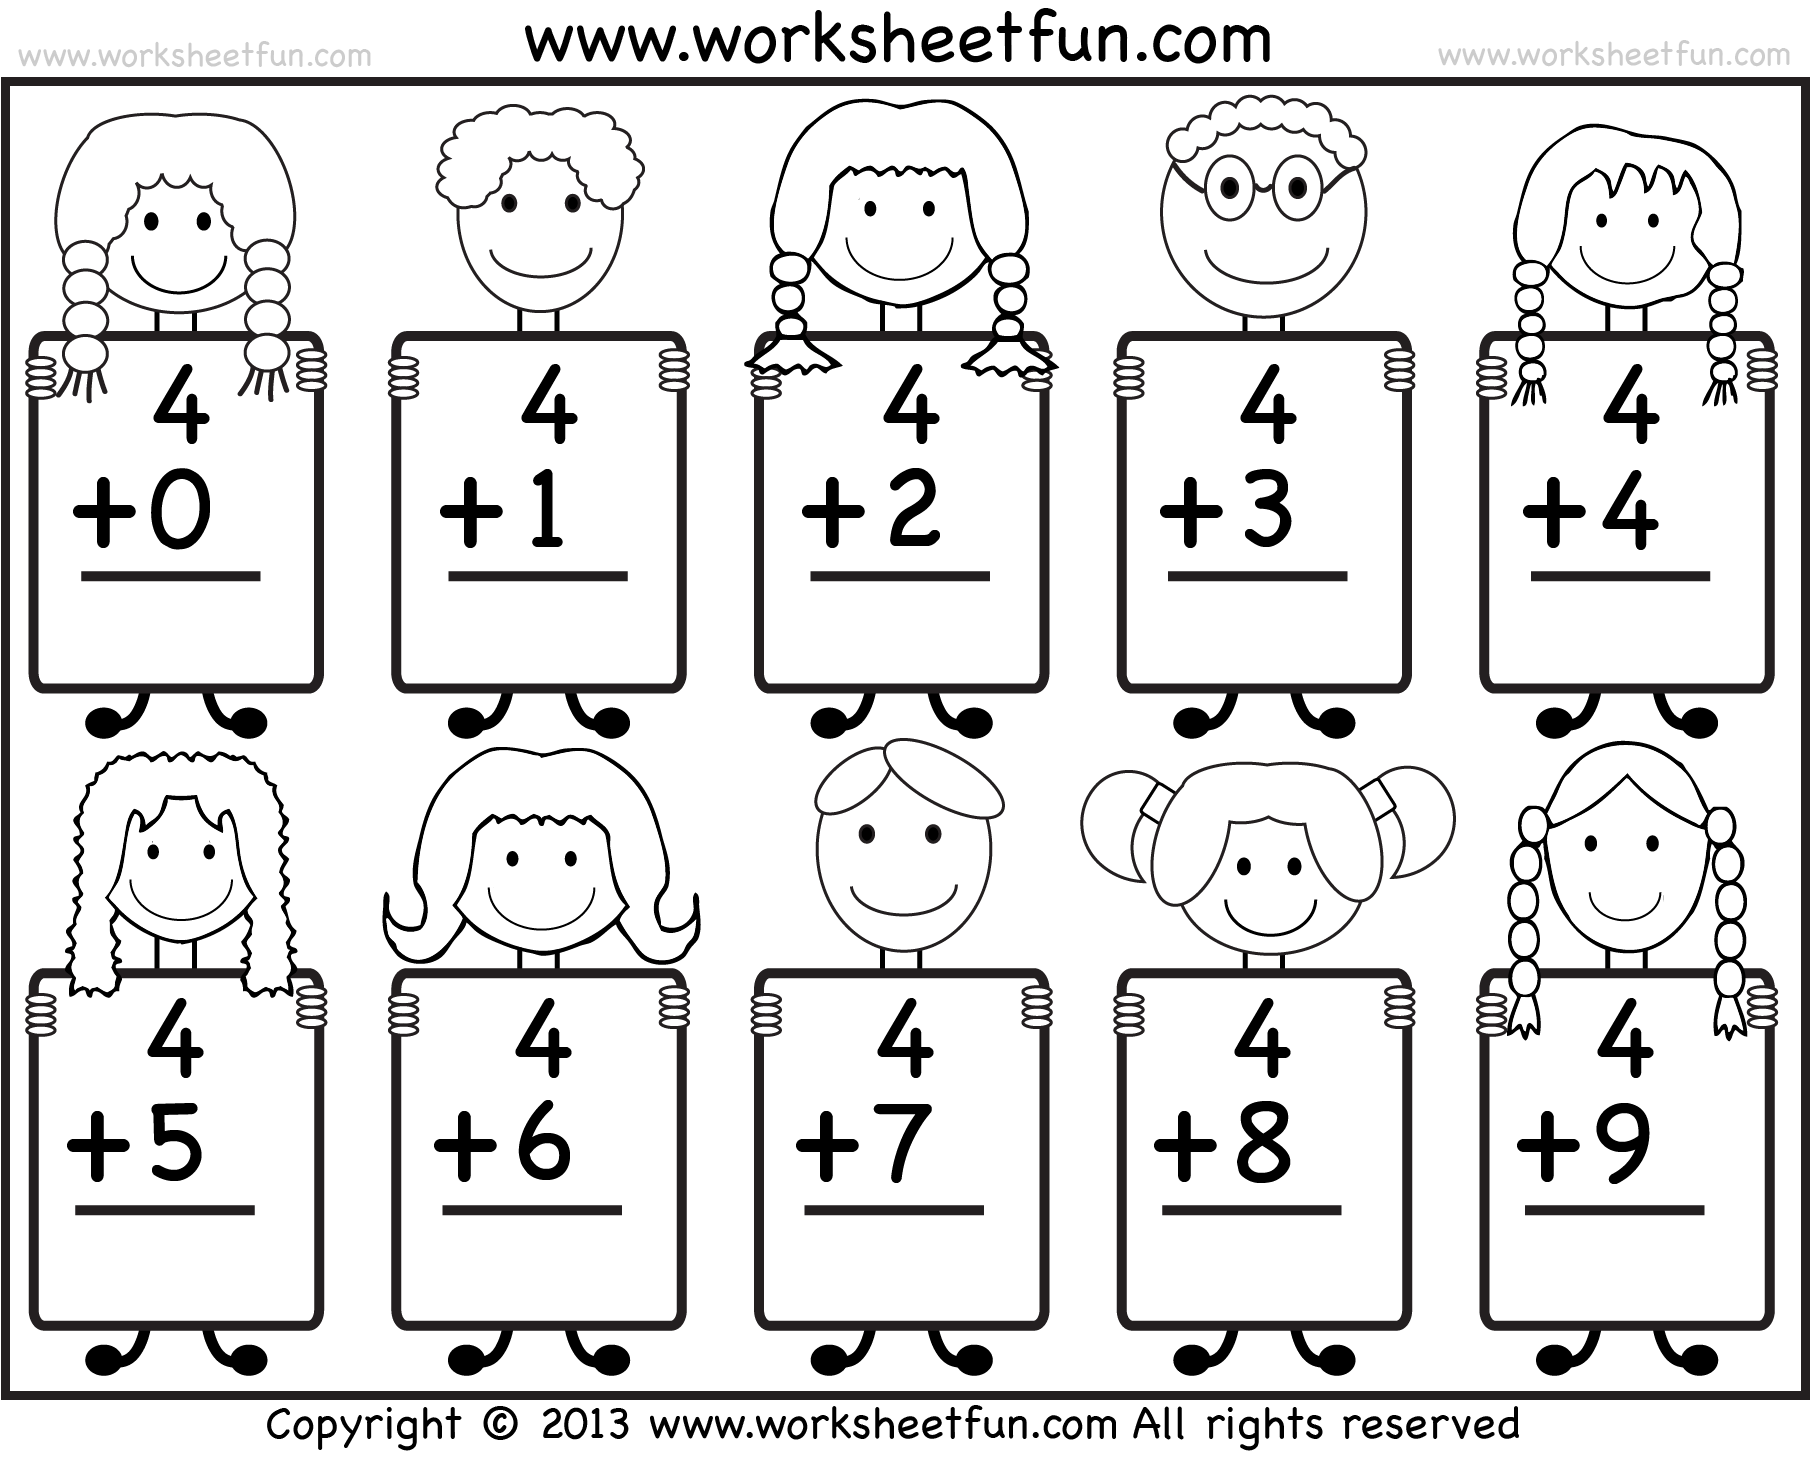 Worksheet 604780 Maths Worksheets for Kg Free Preschool and – Worksheets for Kindergarten Math